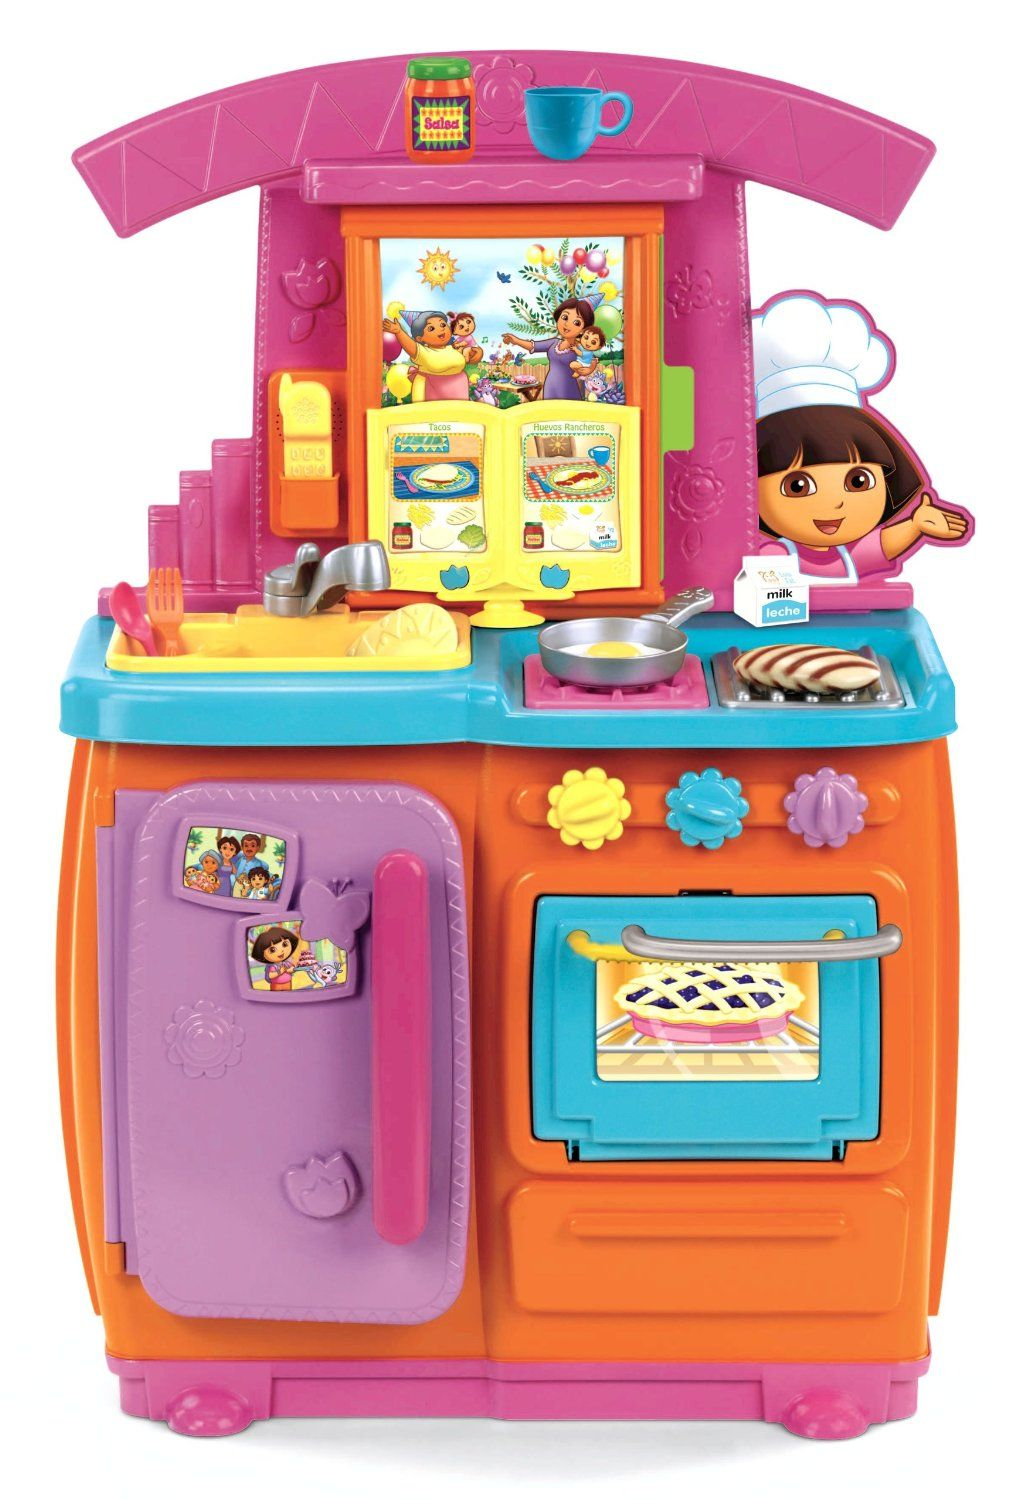 Fisher Price Dora Kitchen Playset Best Gifts Top Toys Kitchen Sets For Kids Dora Kitchen Cool Toys For Girls